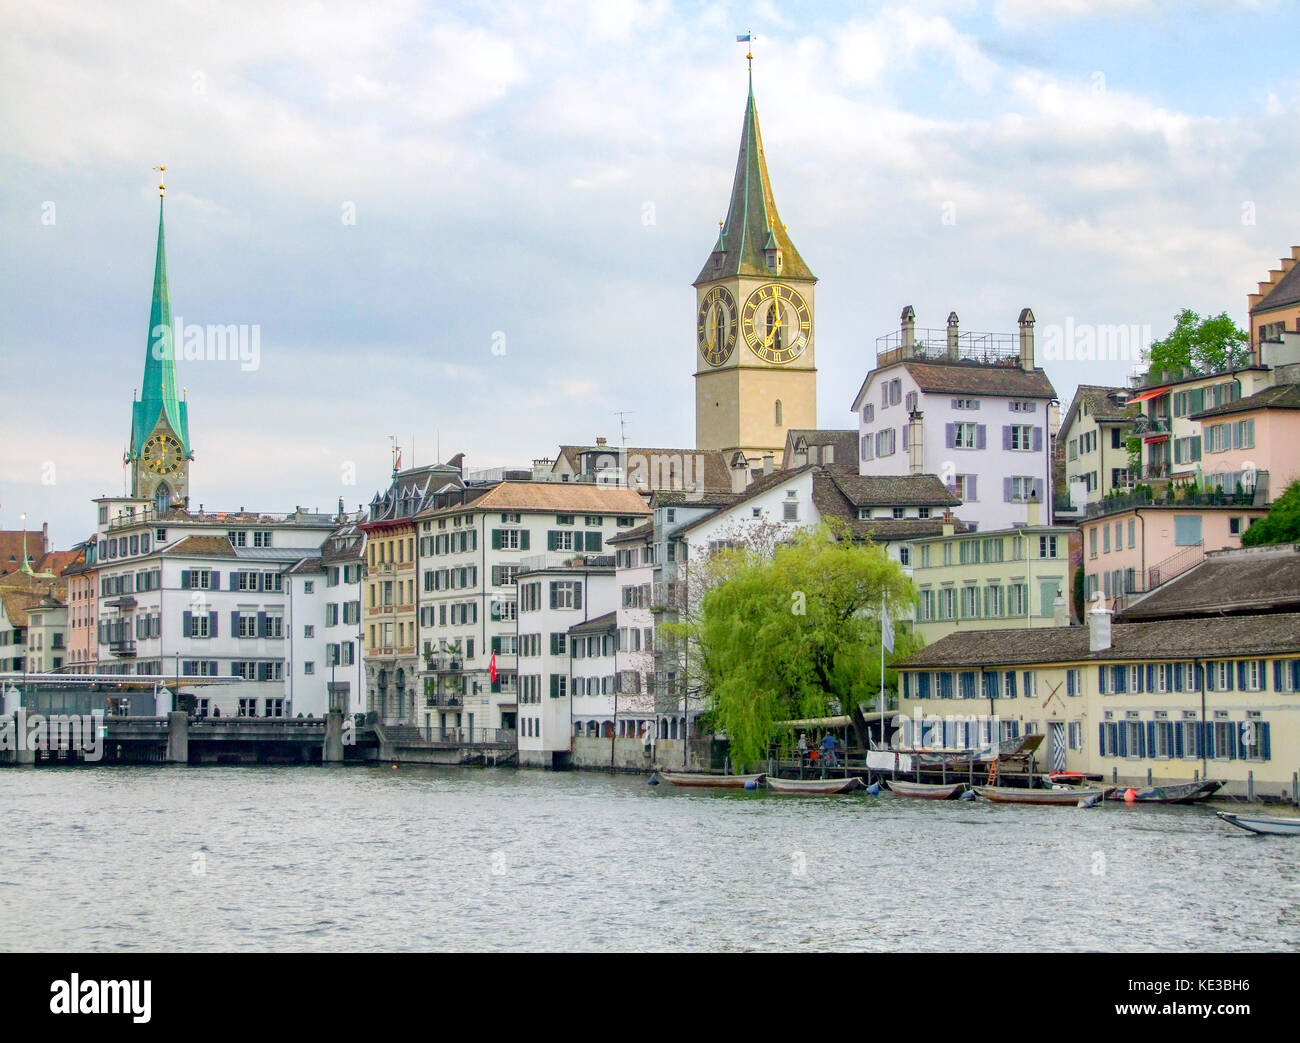 riparian scenery of Zurich, the largest city in Switzerland - Stock Image